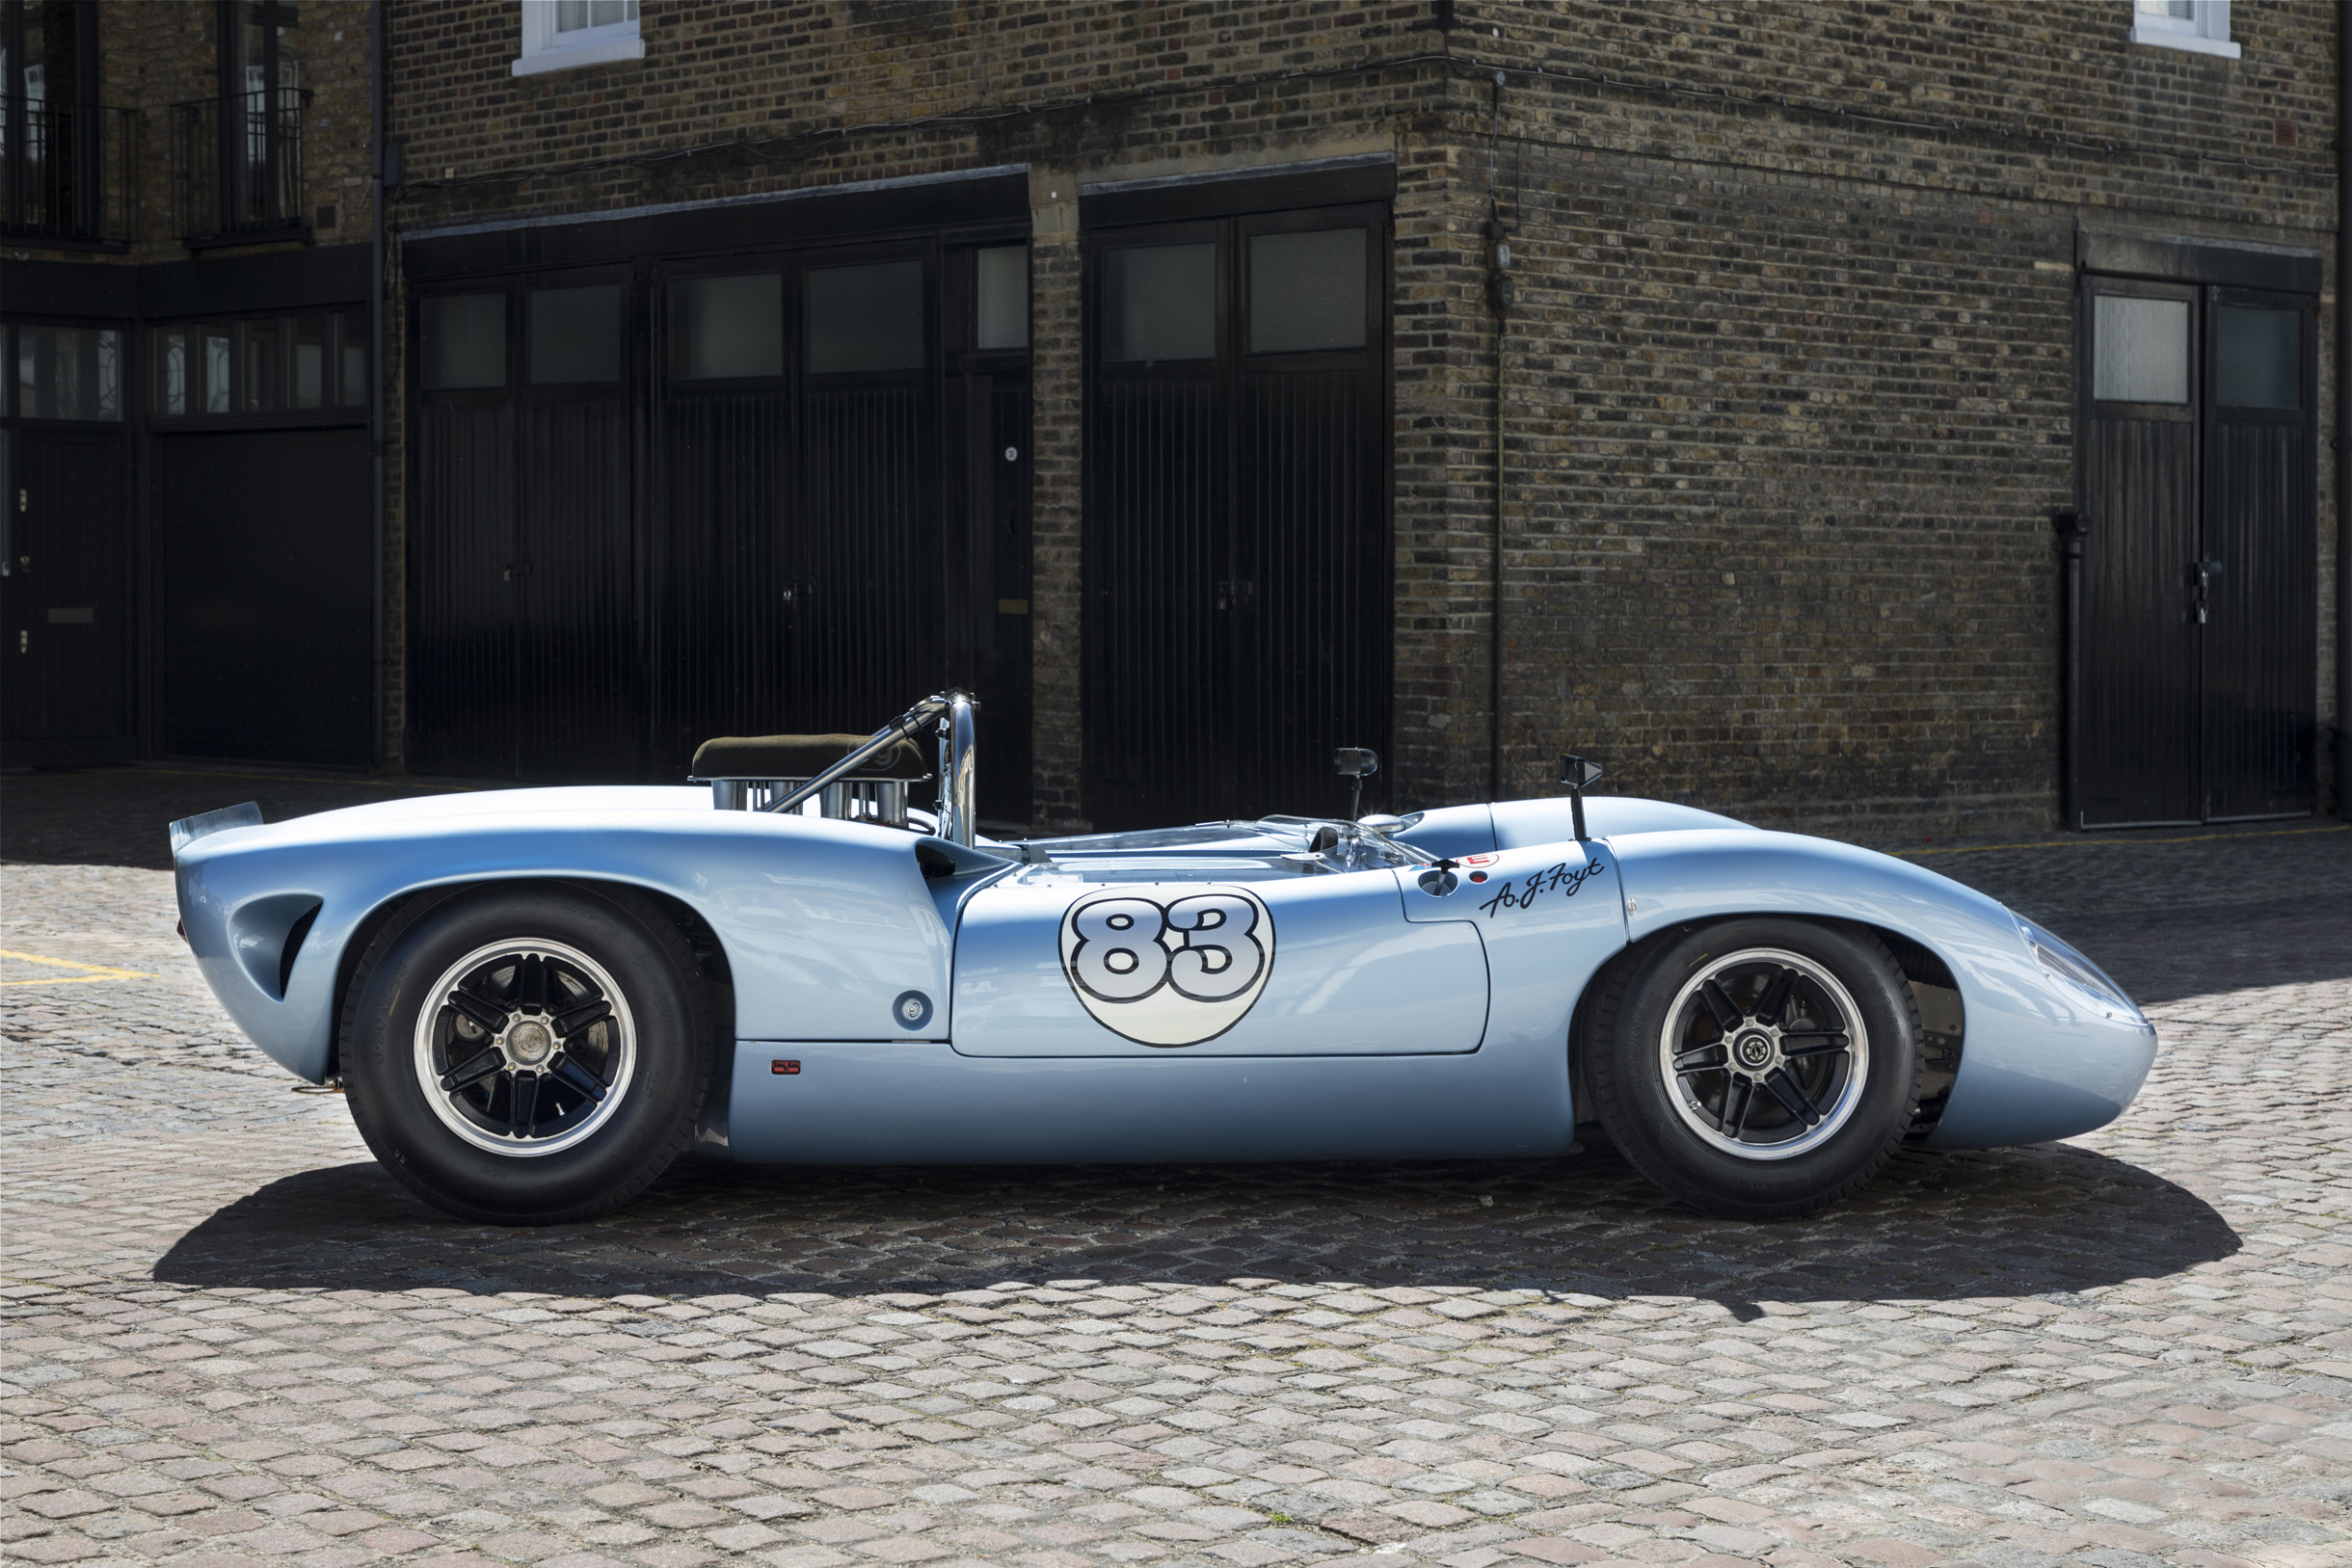 1966 Lola T70 Mk2 Spyder | Previously Sold | FISKENS